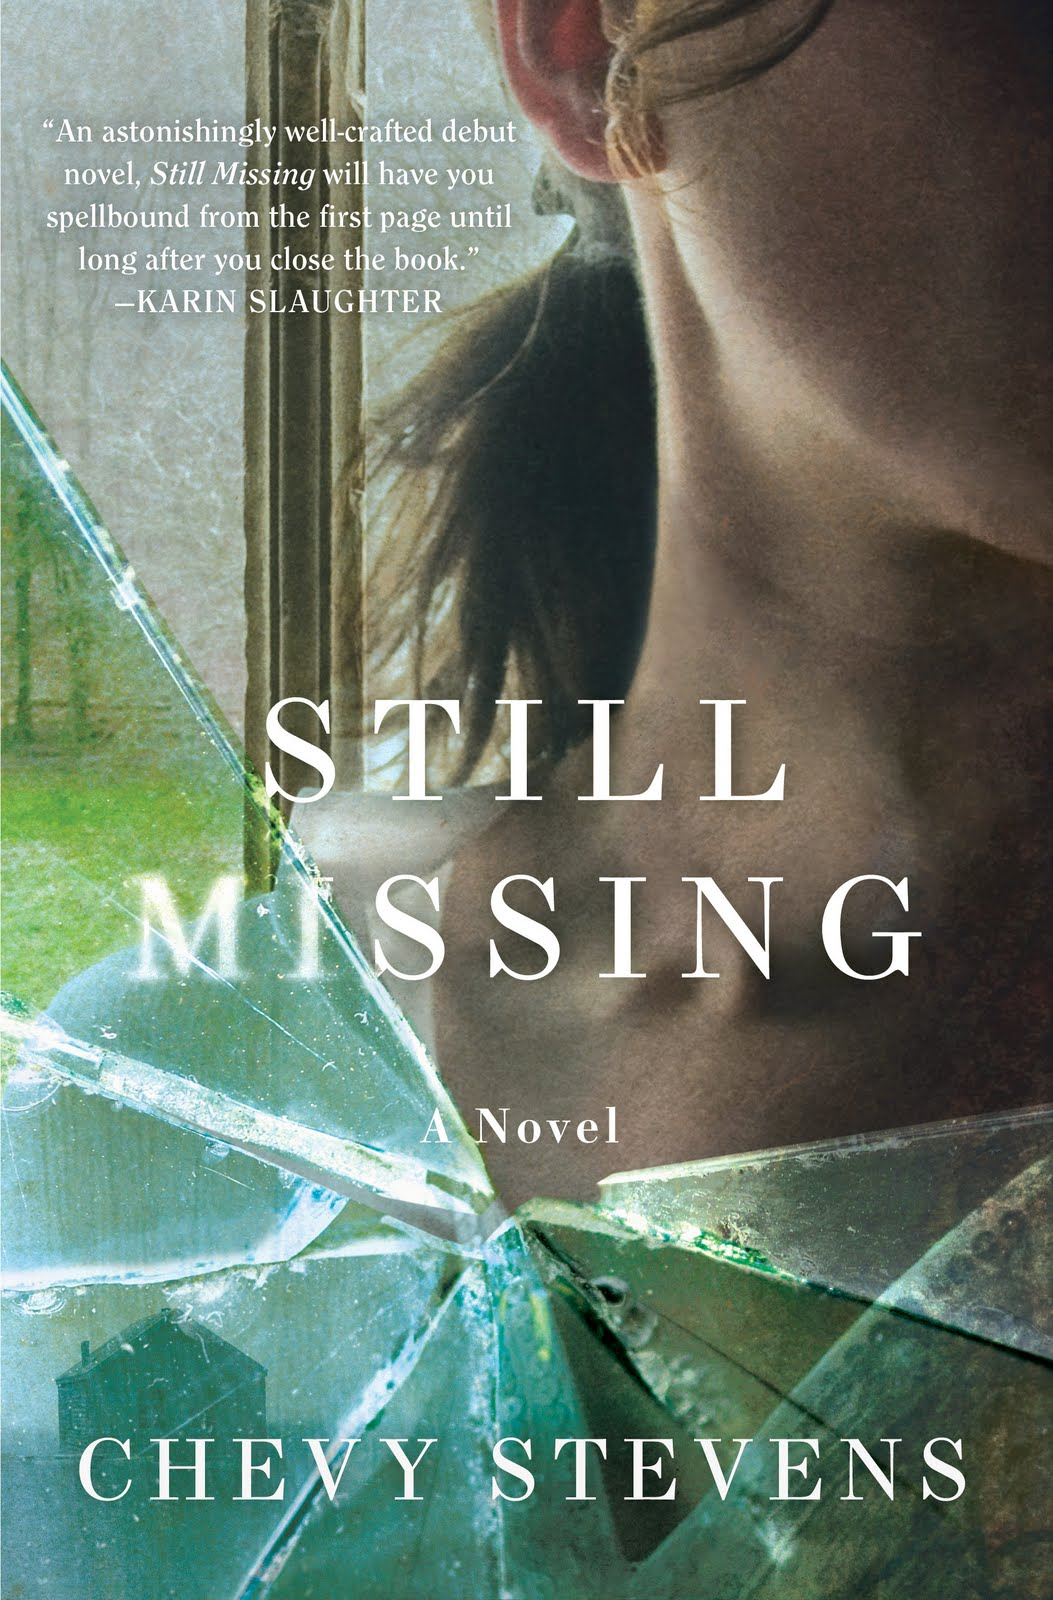 an analysis of the novel still missing Find helpful customer reviews and review ratings for analysis of go set a quality analysis of a novel without having to worry that you are missing.